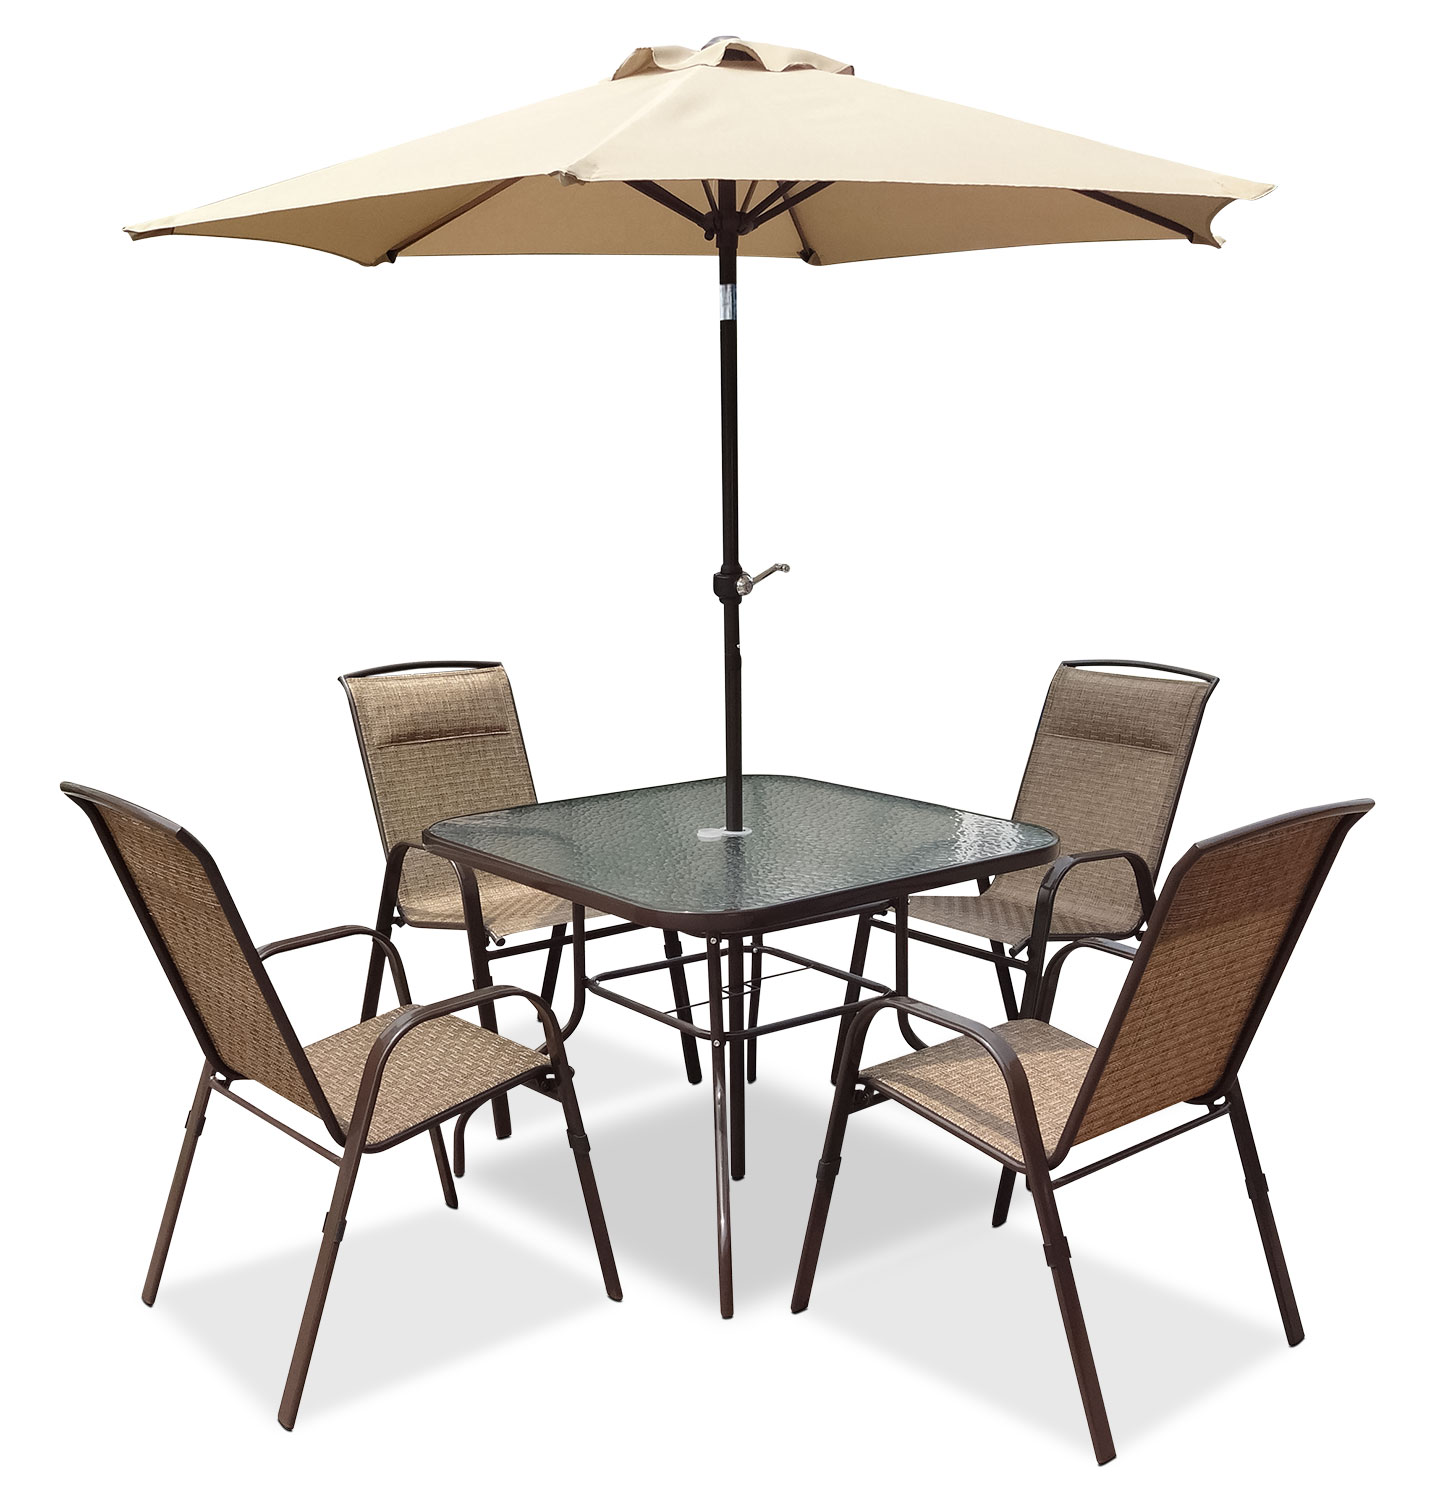 outdoor furniture corliving 6 piece patio dining set with umbrella